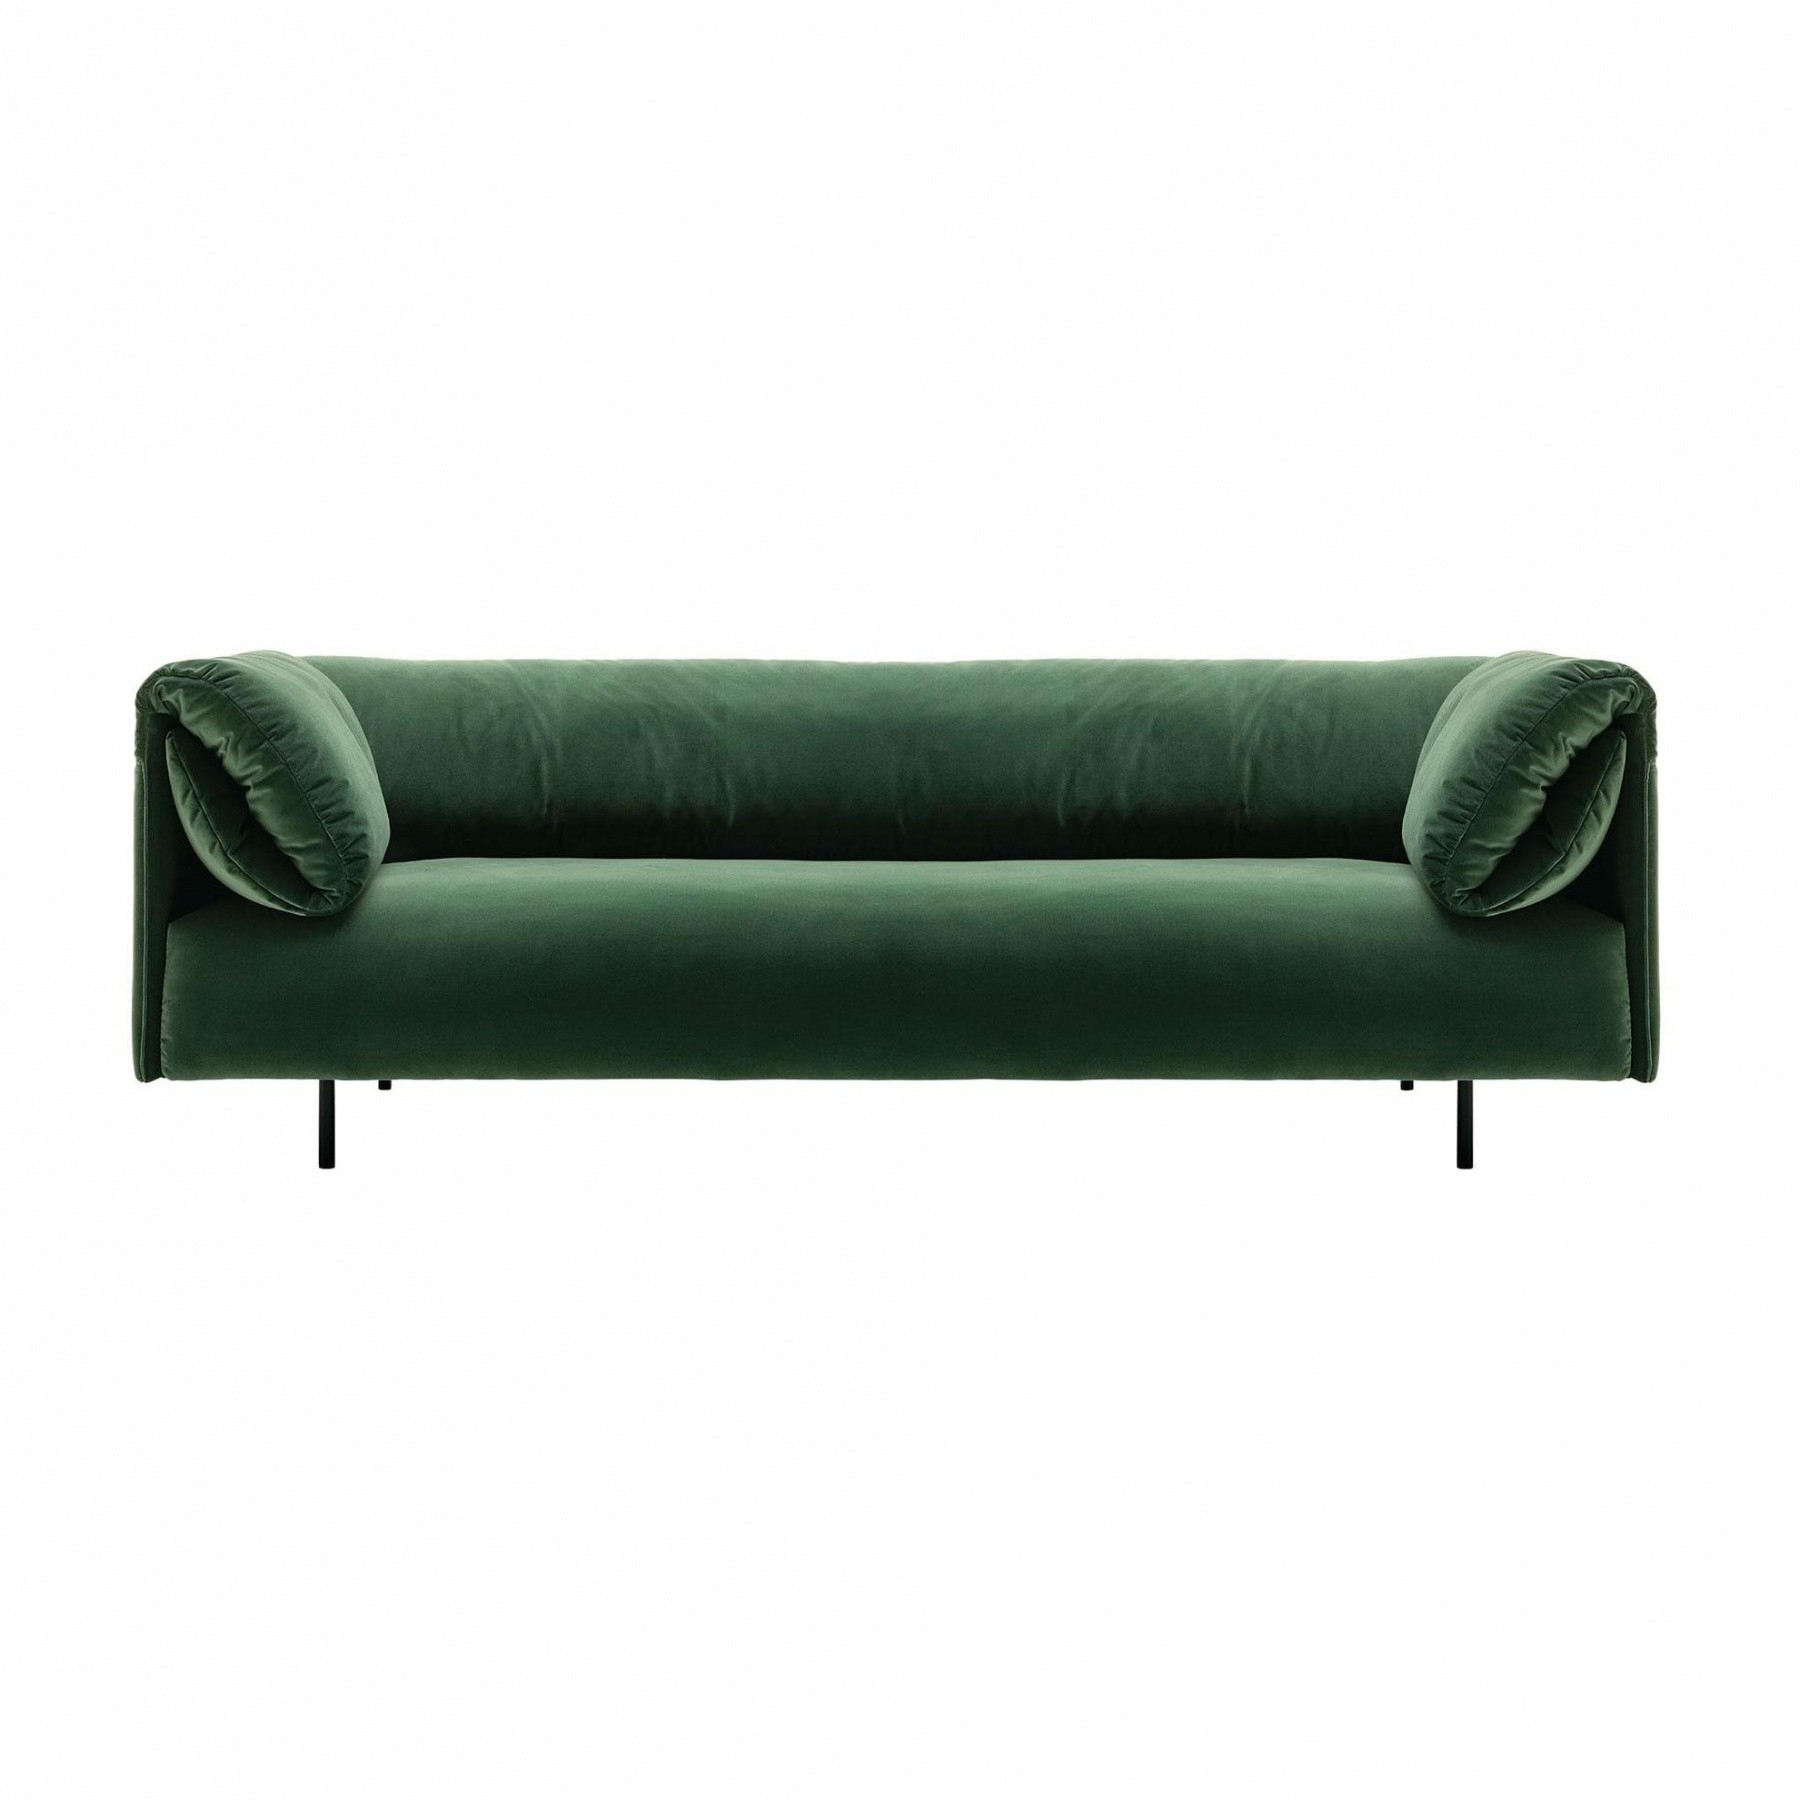 Benz Couch Rolf Benz 520 Alma Sofa 4 Seater